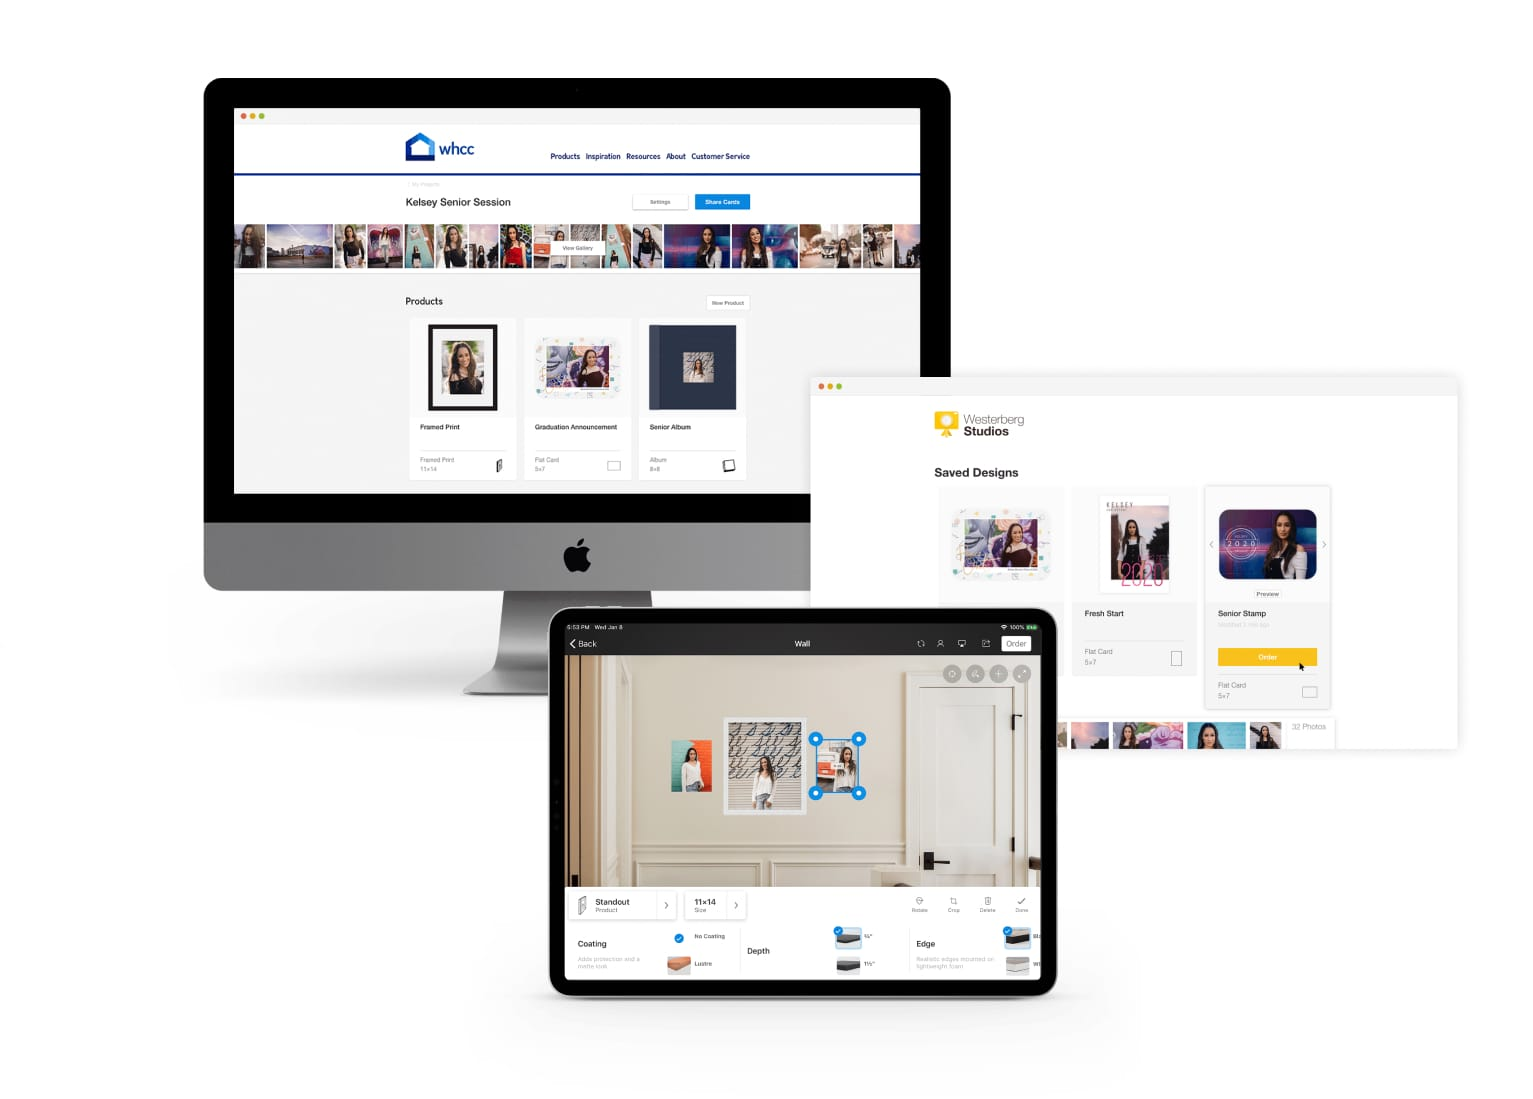 Mockup of Studio by WHCC in a desktop screen, browser screen, and iPad screen